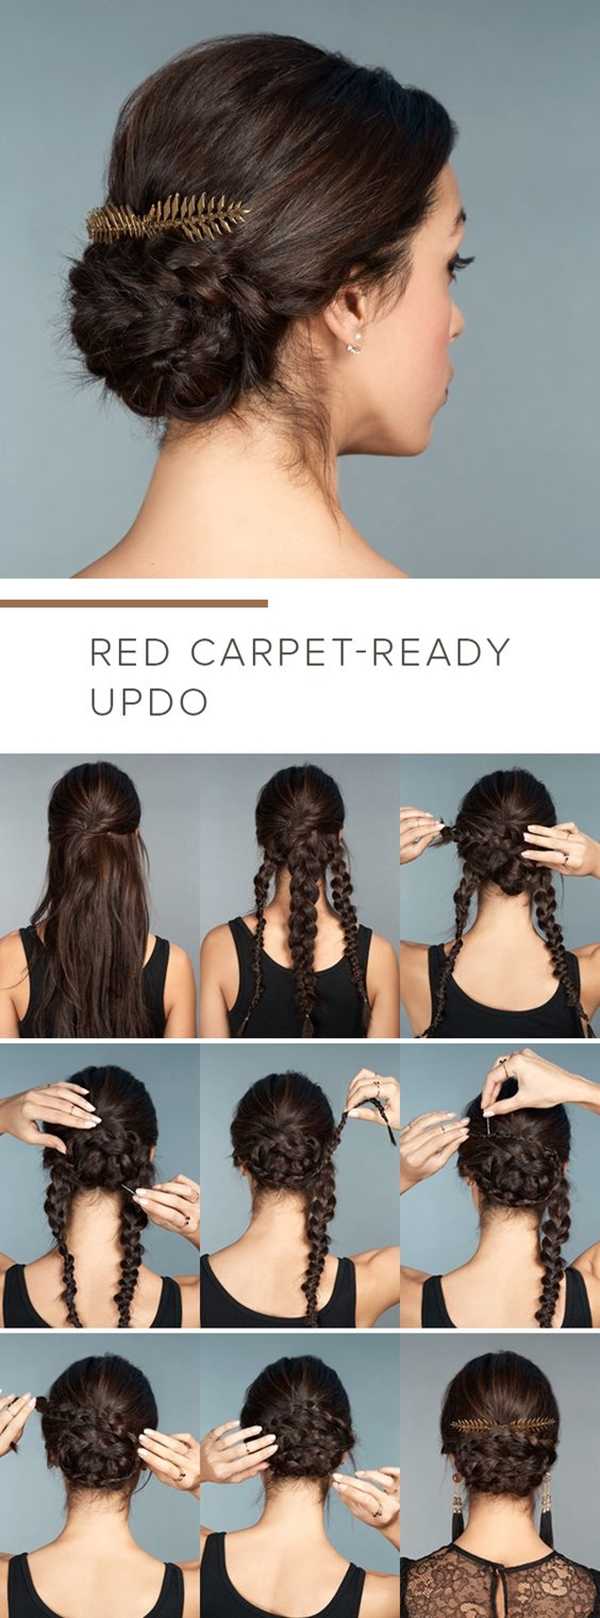 https://www.more.com/beauty/hair/braided-hairstyles/50-fabulous-french-braid-hairstyles-diy